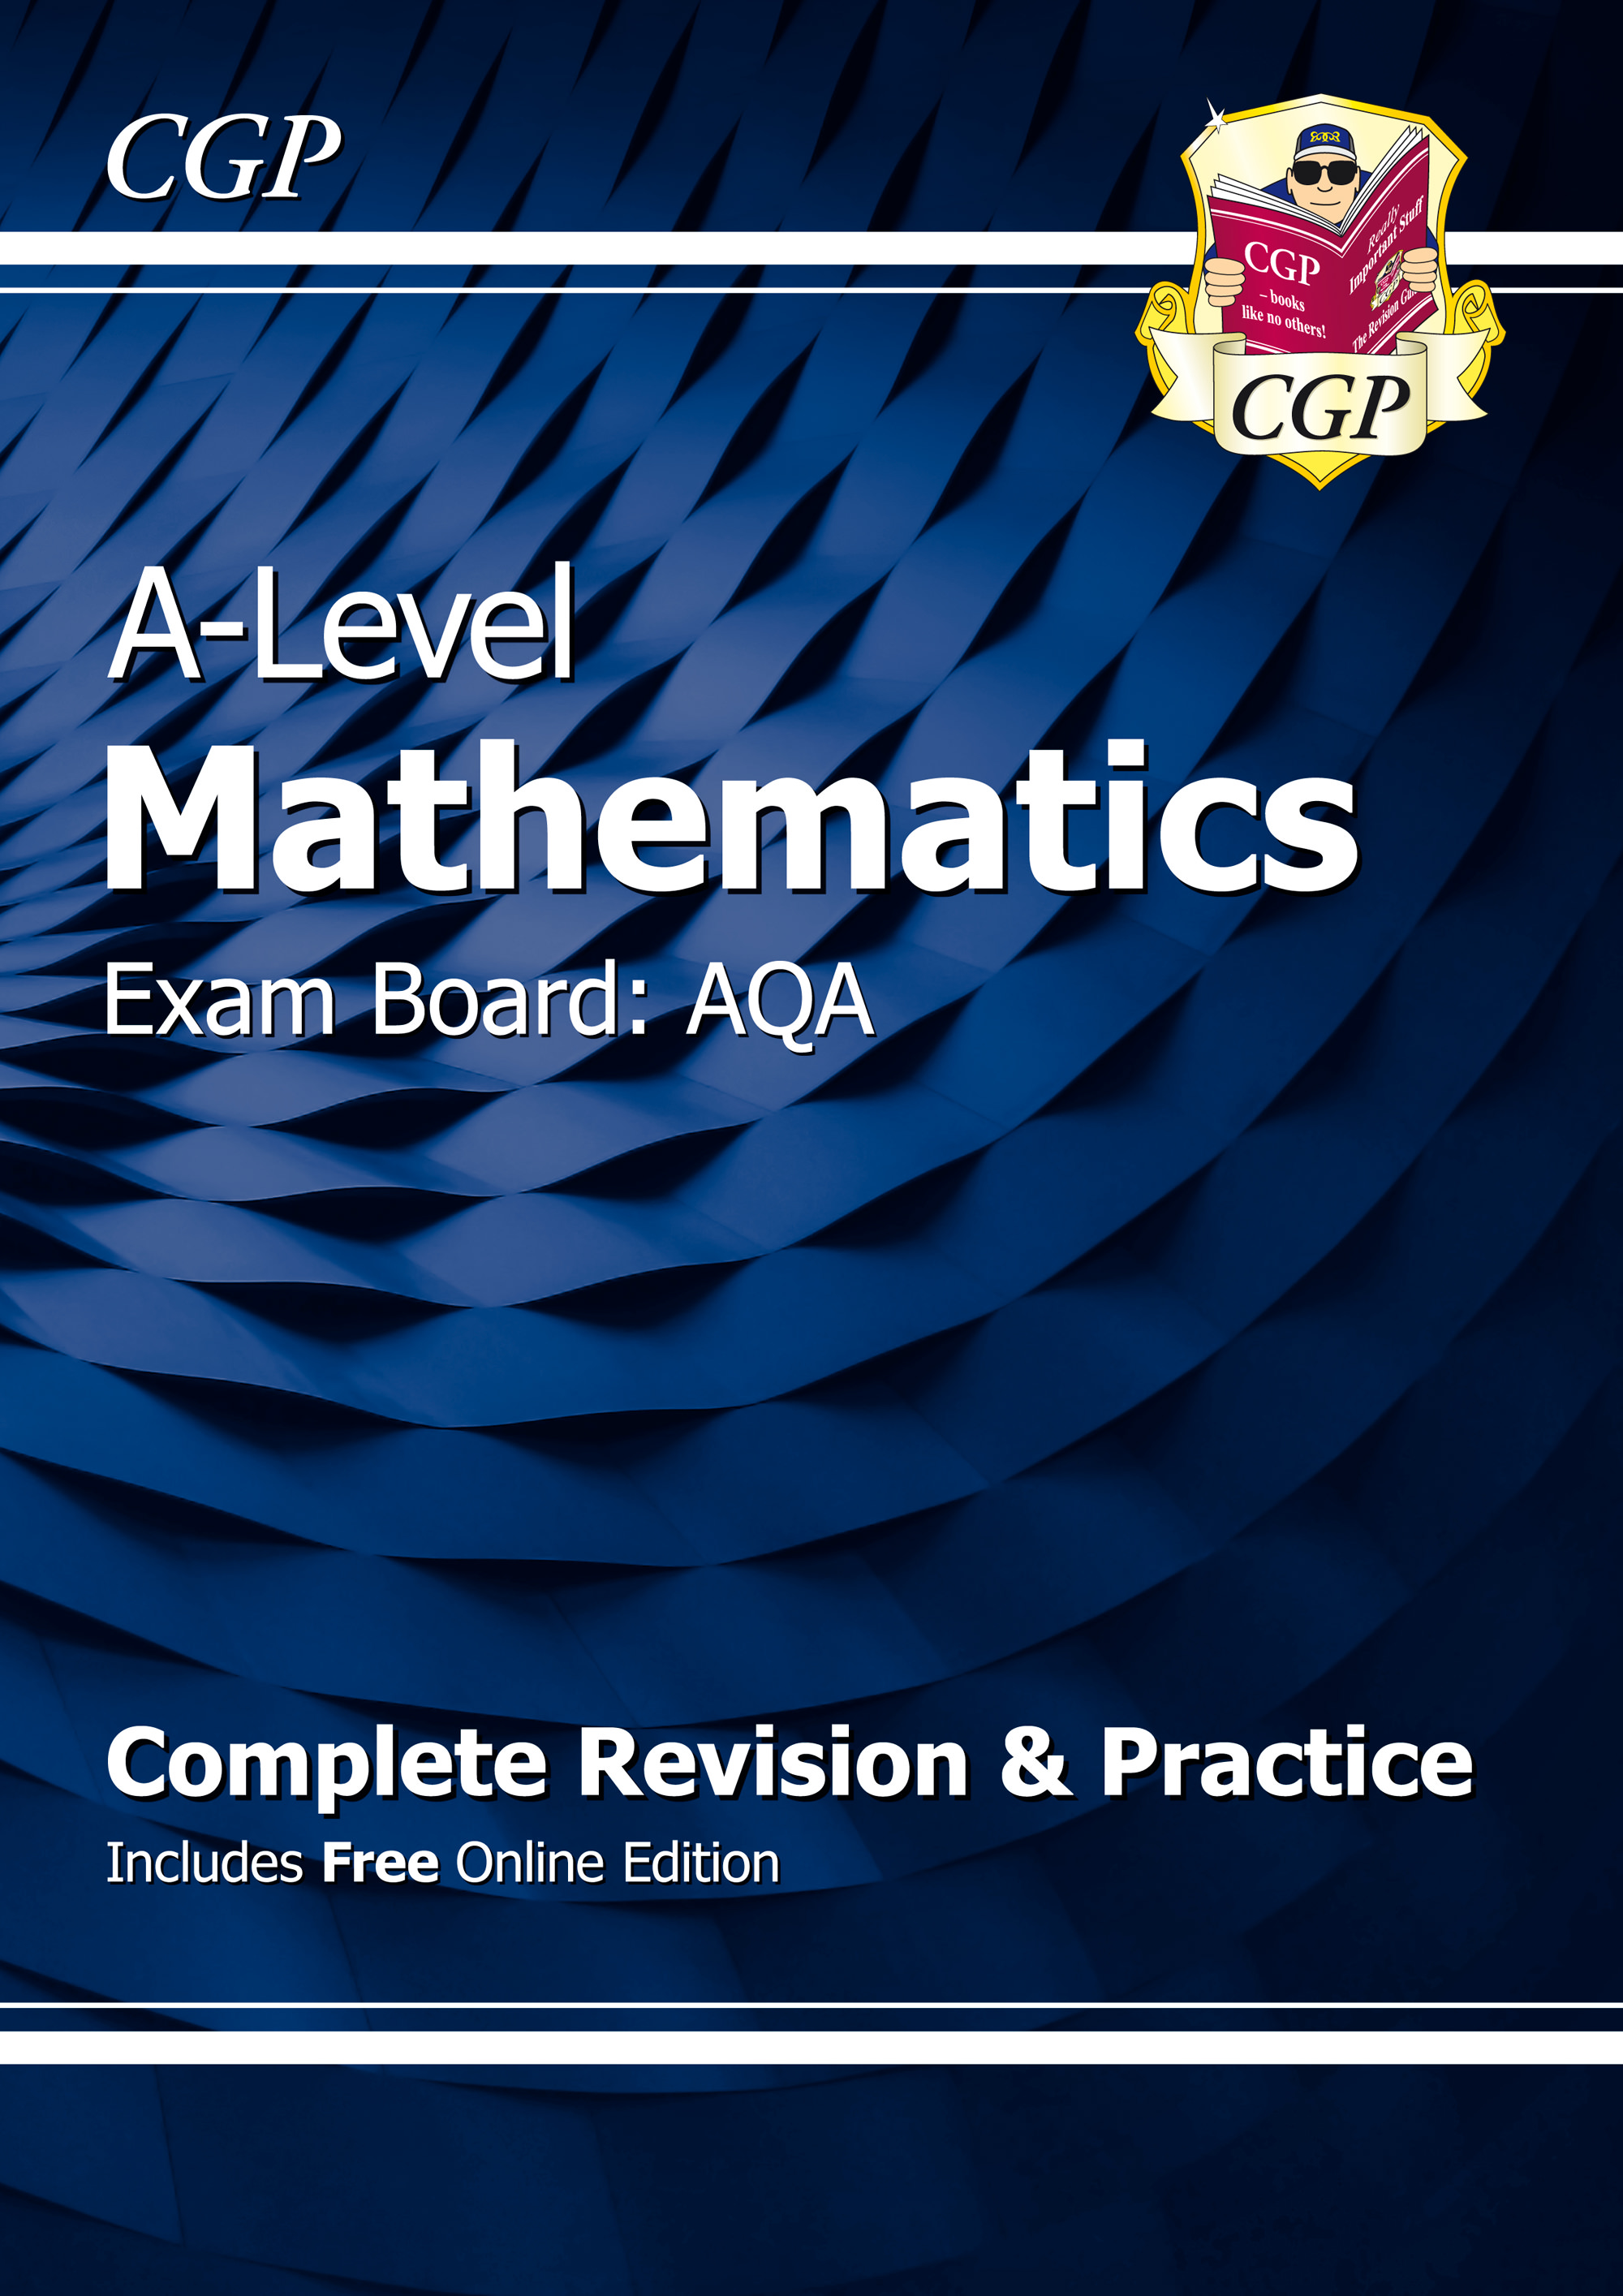 MAHR71 - New A-Level Maths for AQA: Year 1 & 2 Complete Revision & Practice with Online Edition